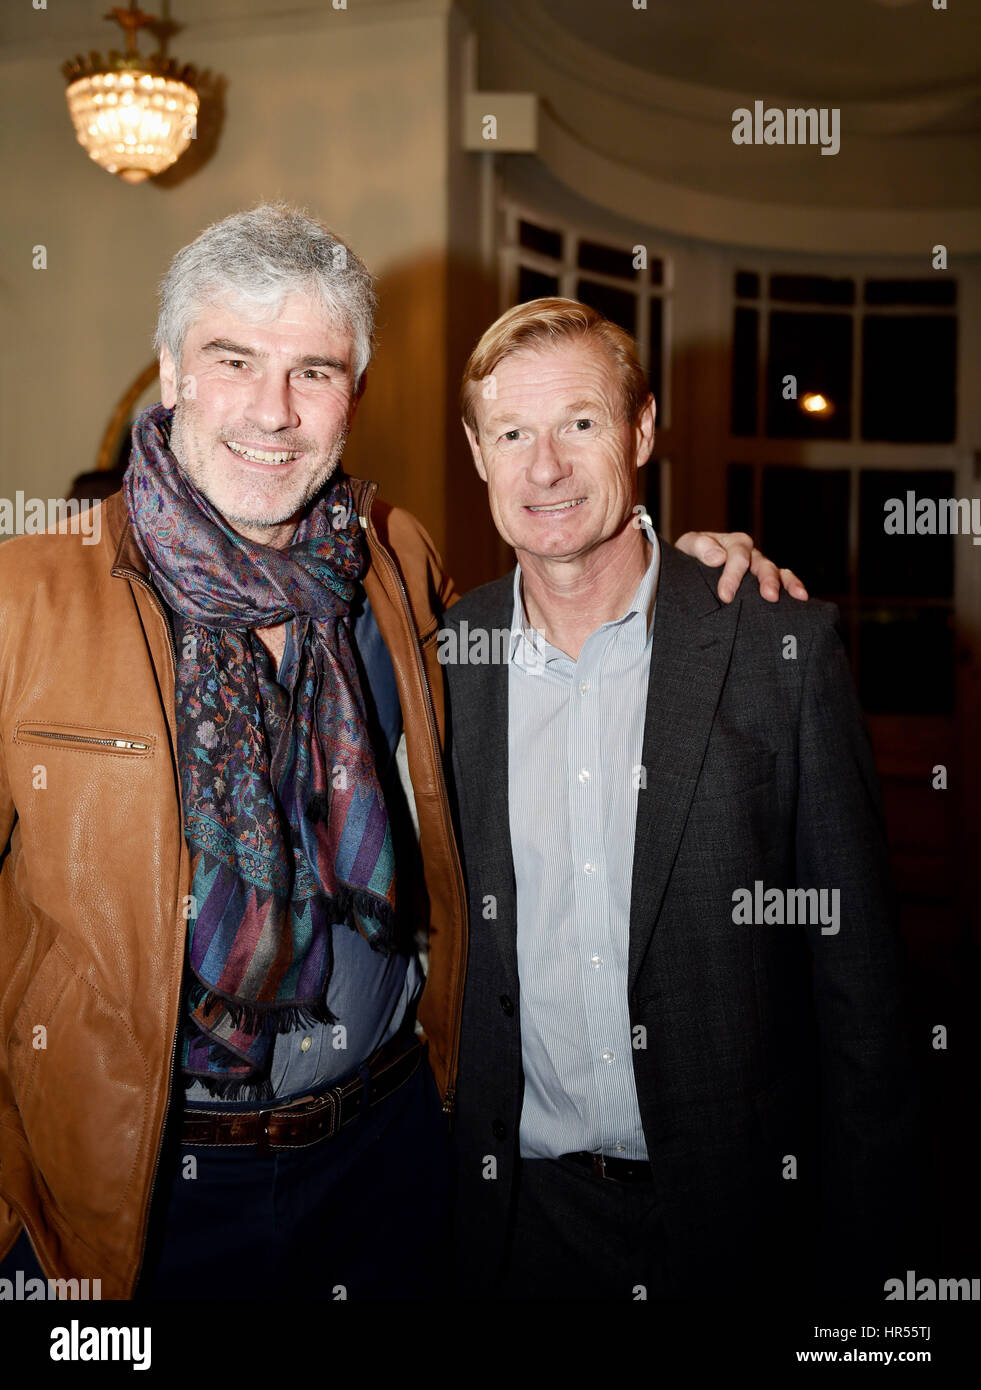 Brighton UK 20th February 2017 - Gary O'Reilly and Garry Neslon at The Goldstone Days 20 Years On celebration - Stock Image